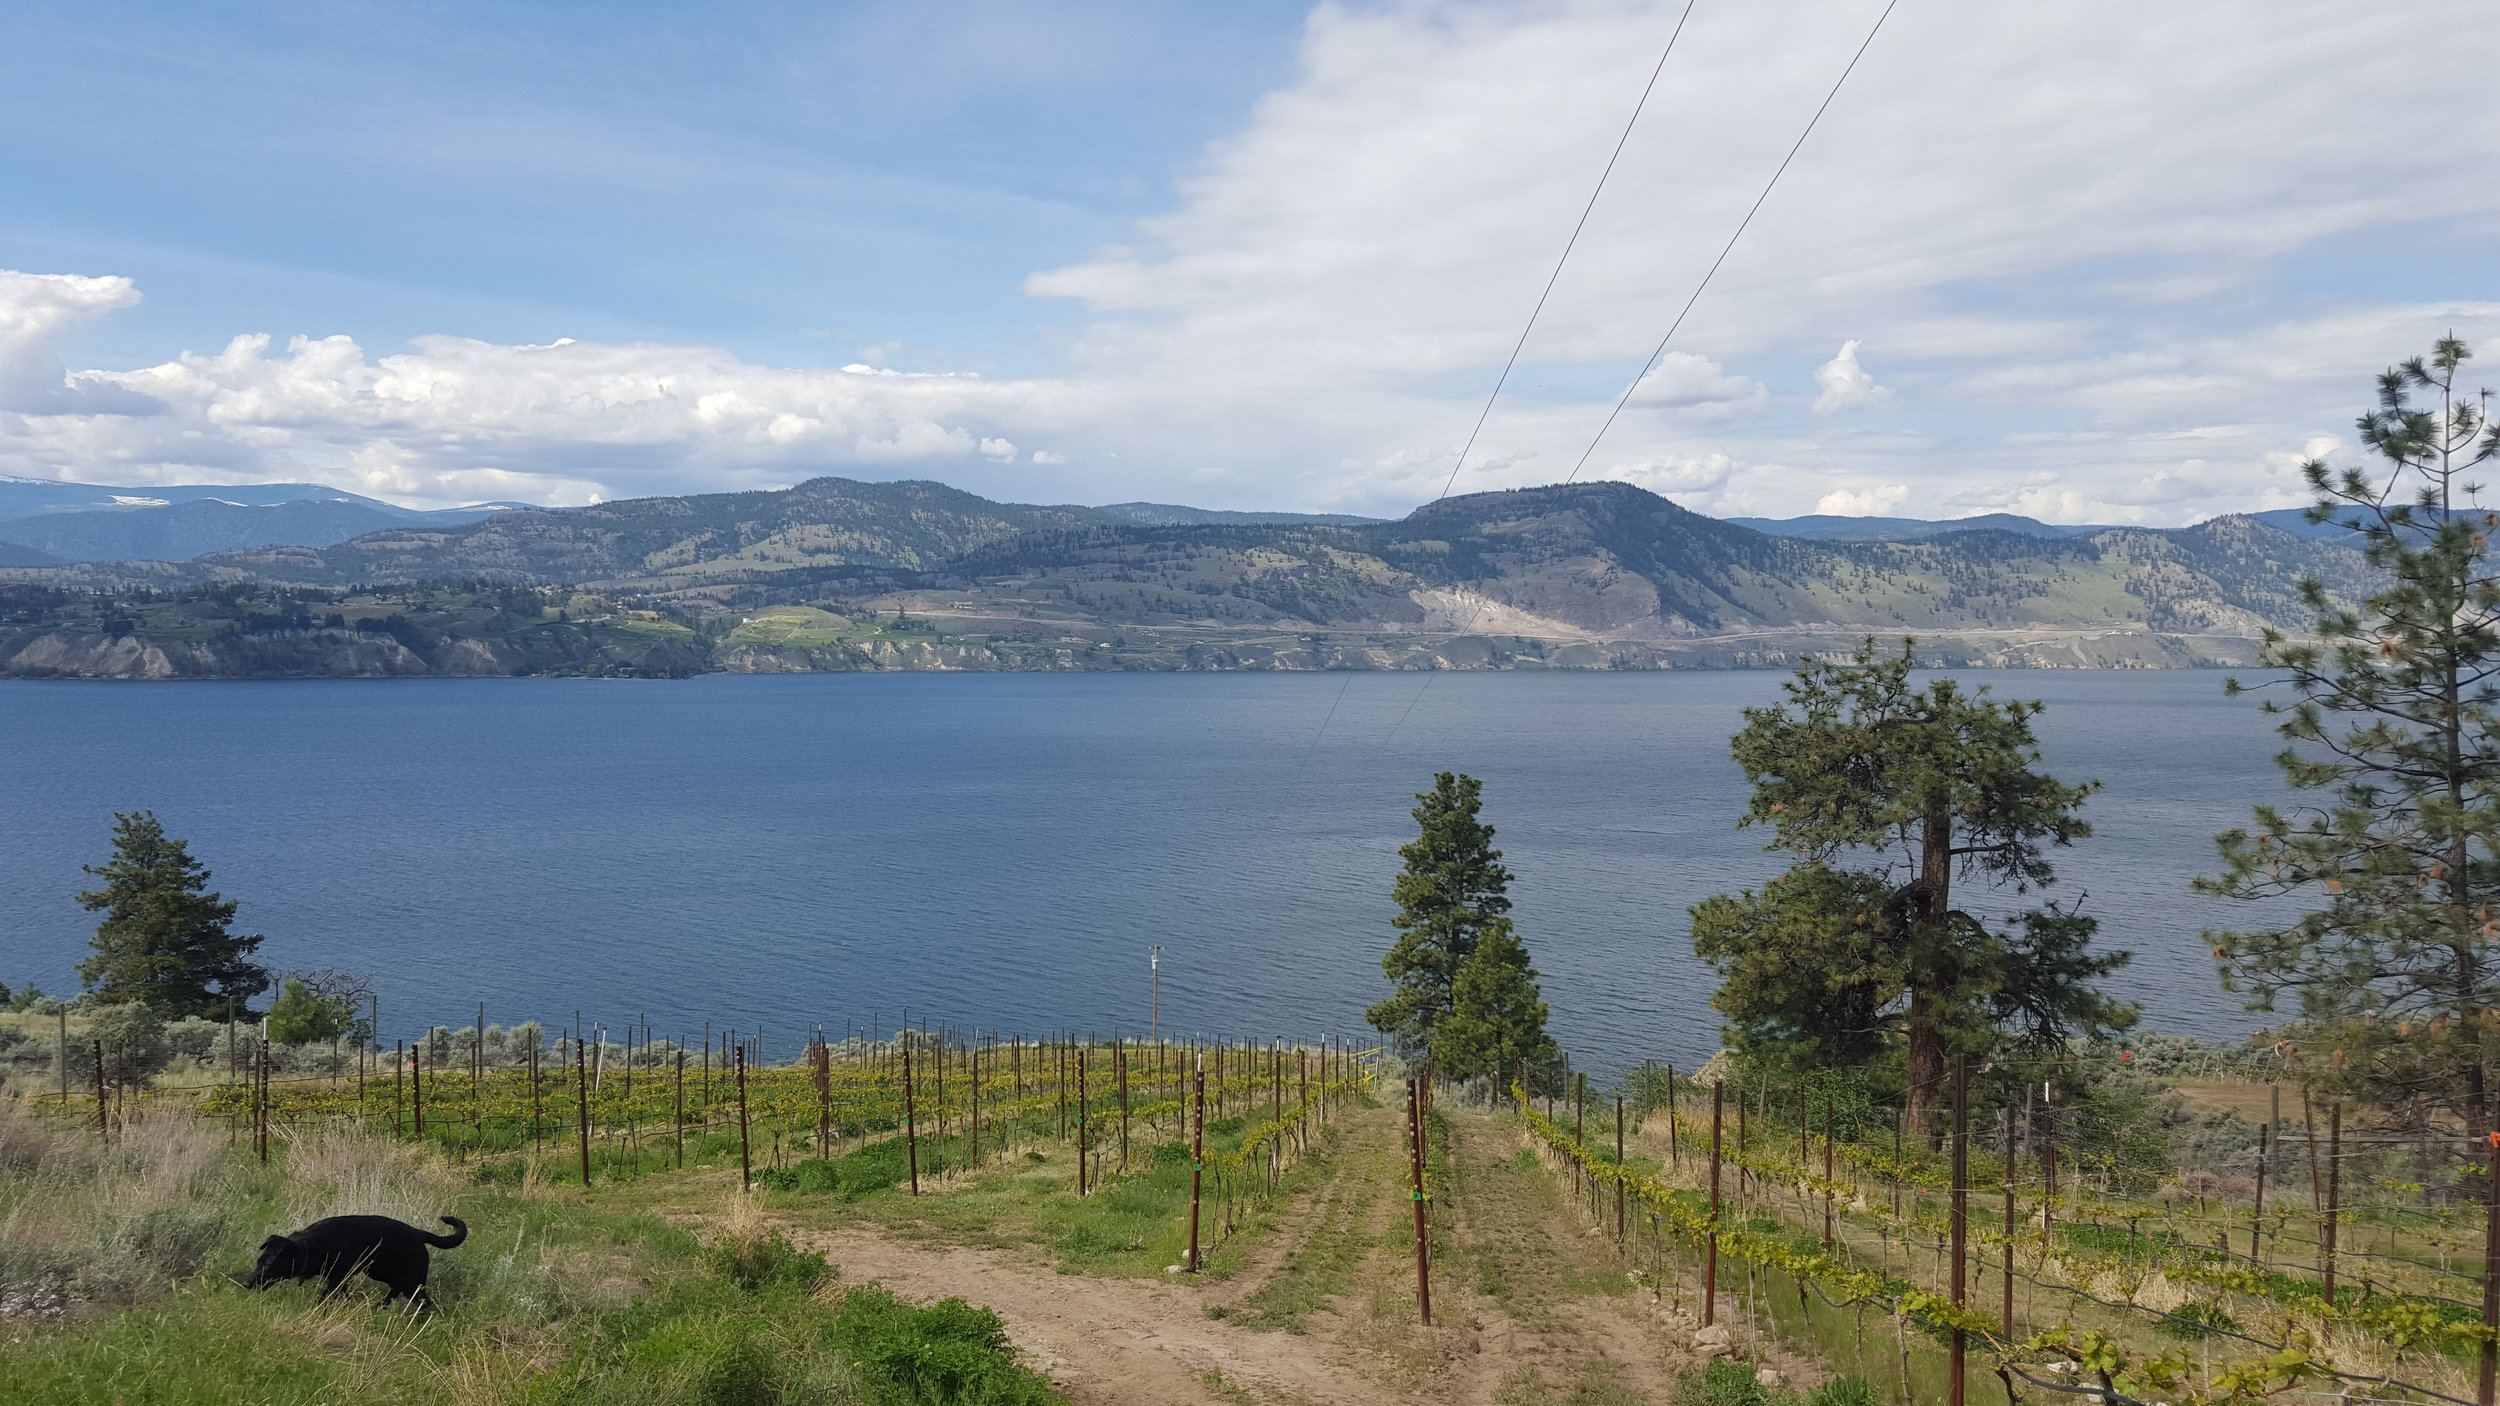 Overlooking Summerland from across Okanagan Lake